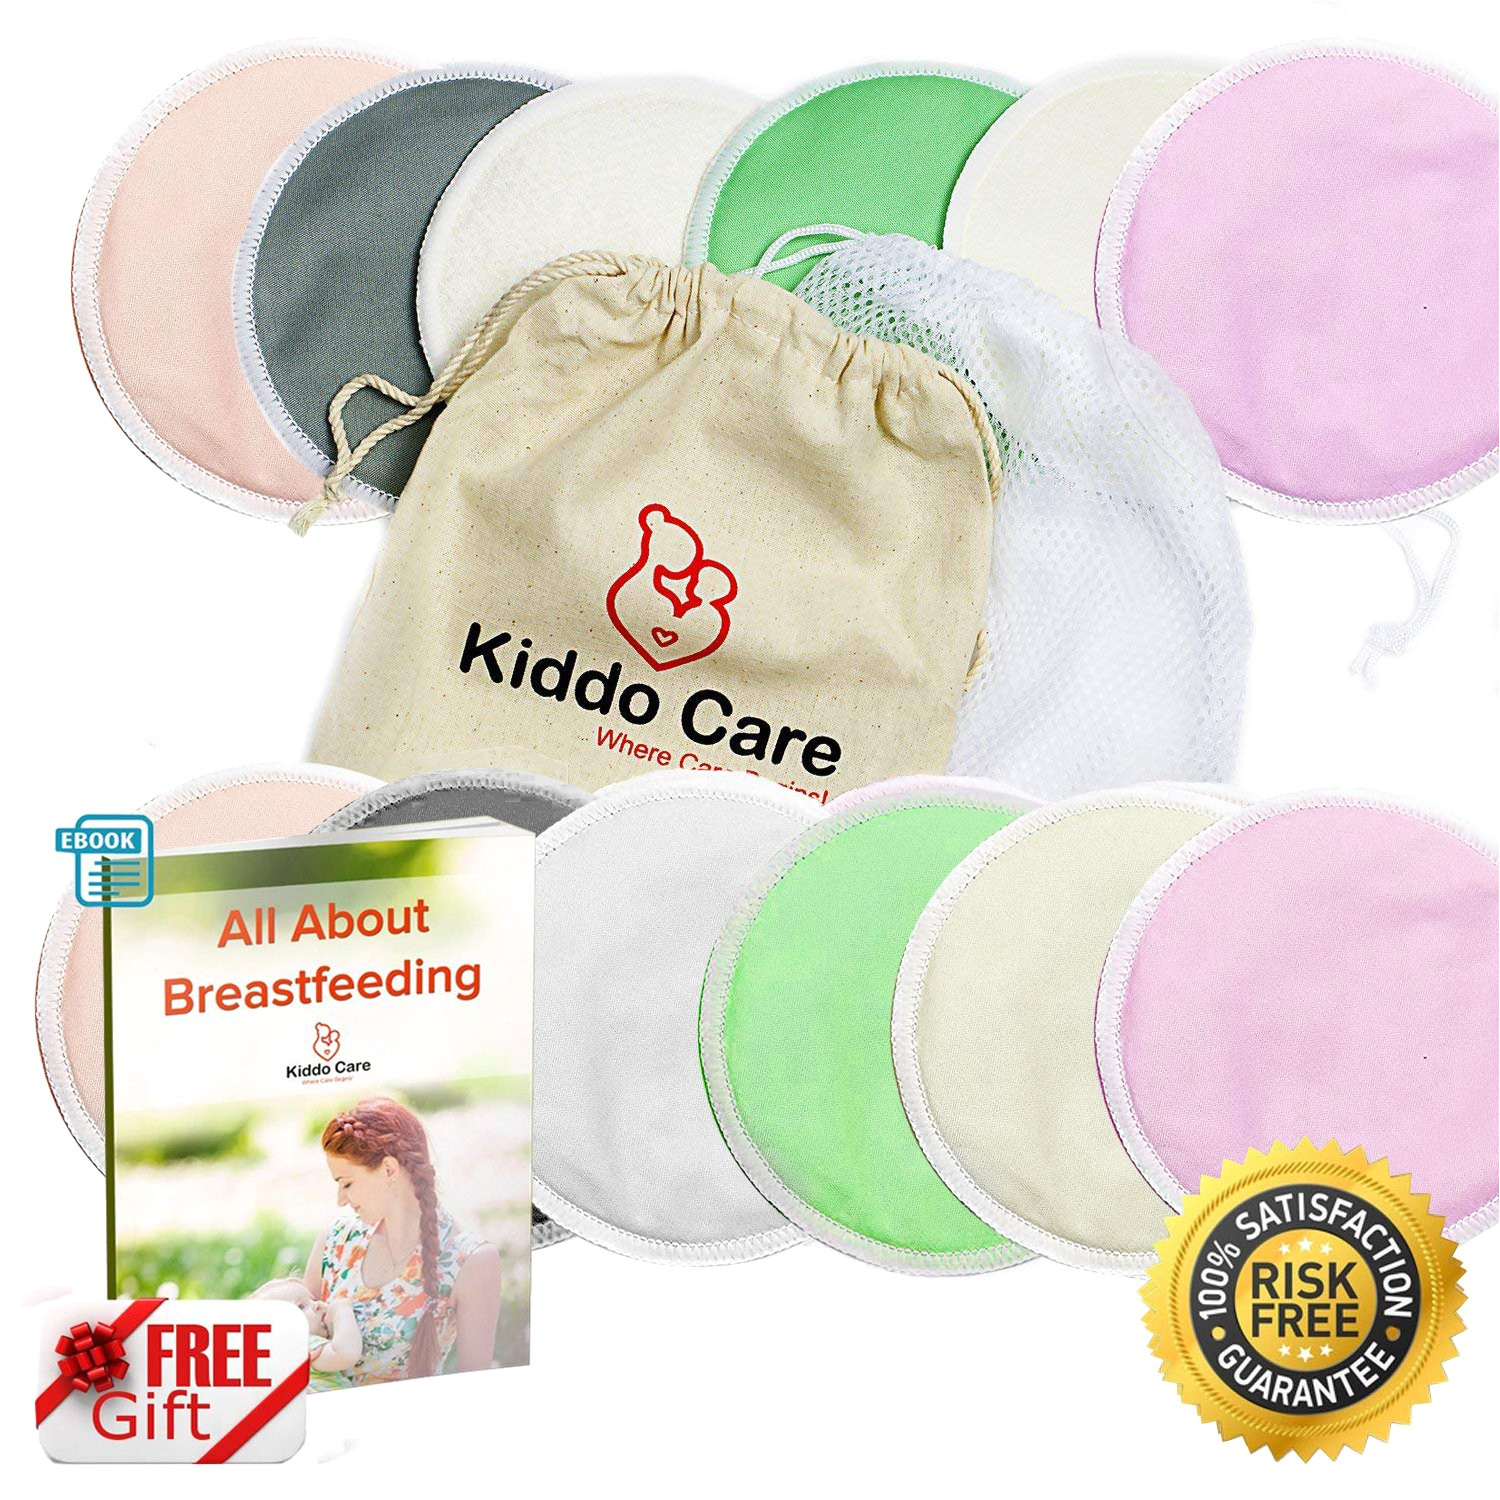 kiddo care washable organic bamboo nursing pads 12 pack colored 6 pairs reusable breast pads bra pads leakproof ultra soft waterproof